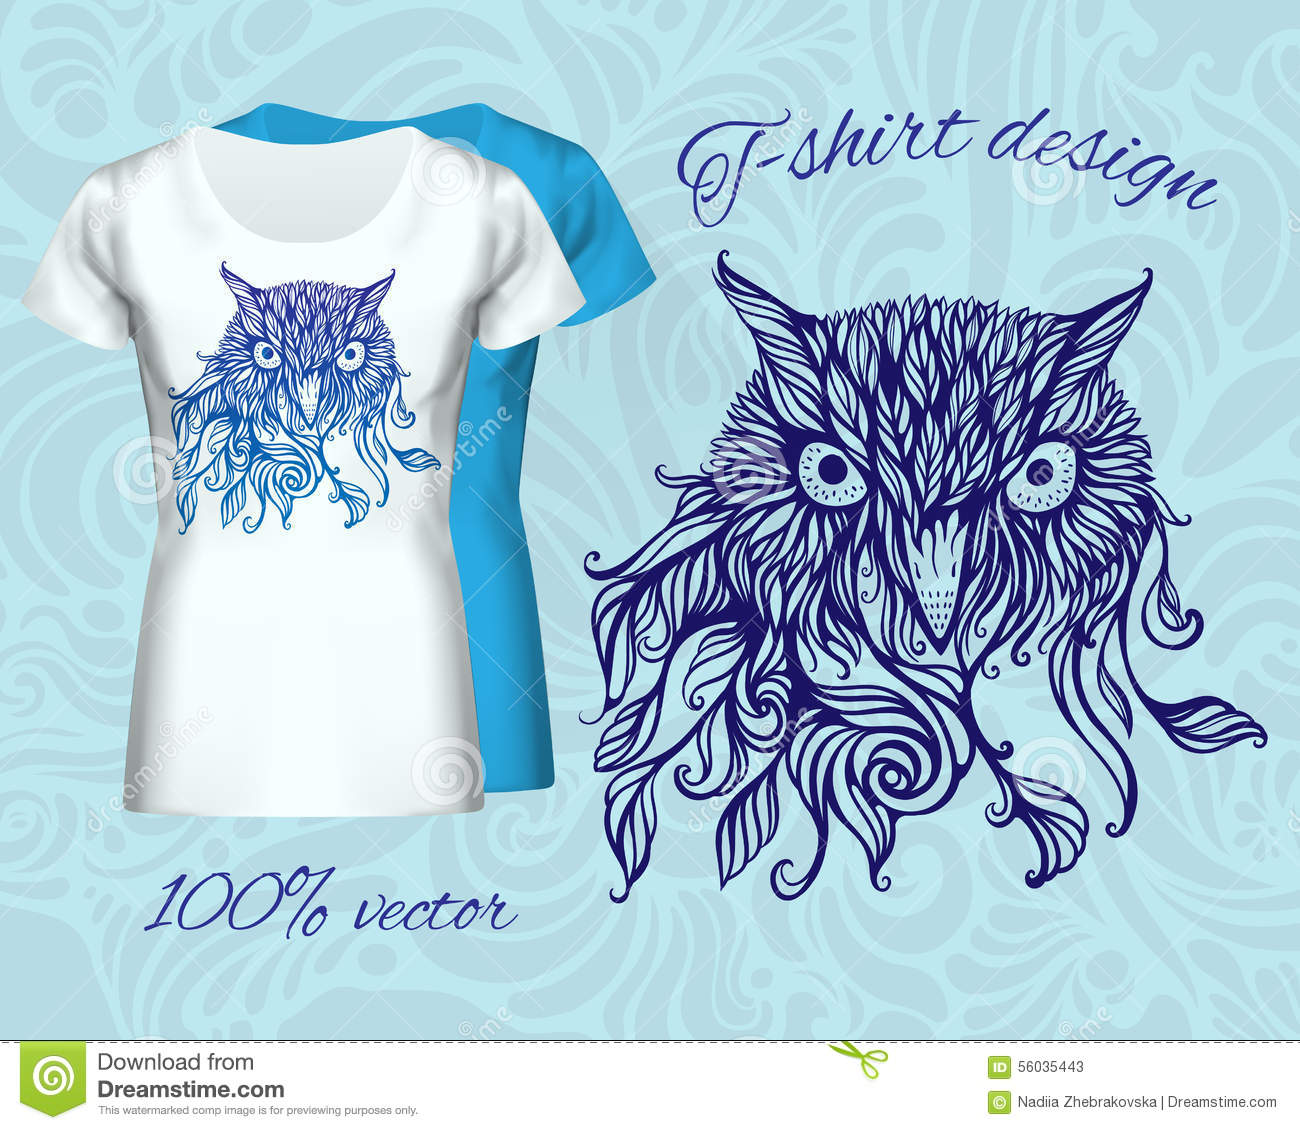 T-shirt design with head of owl